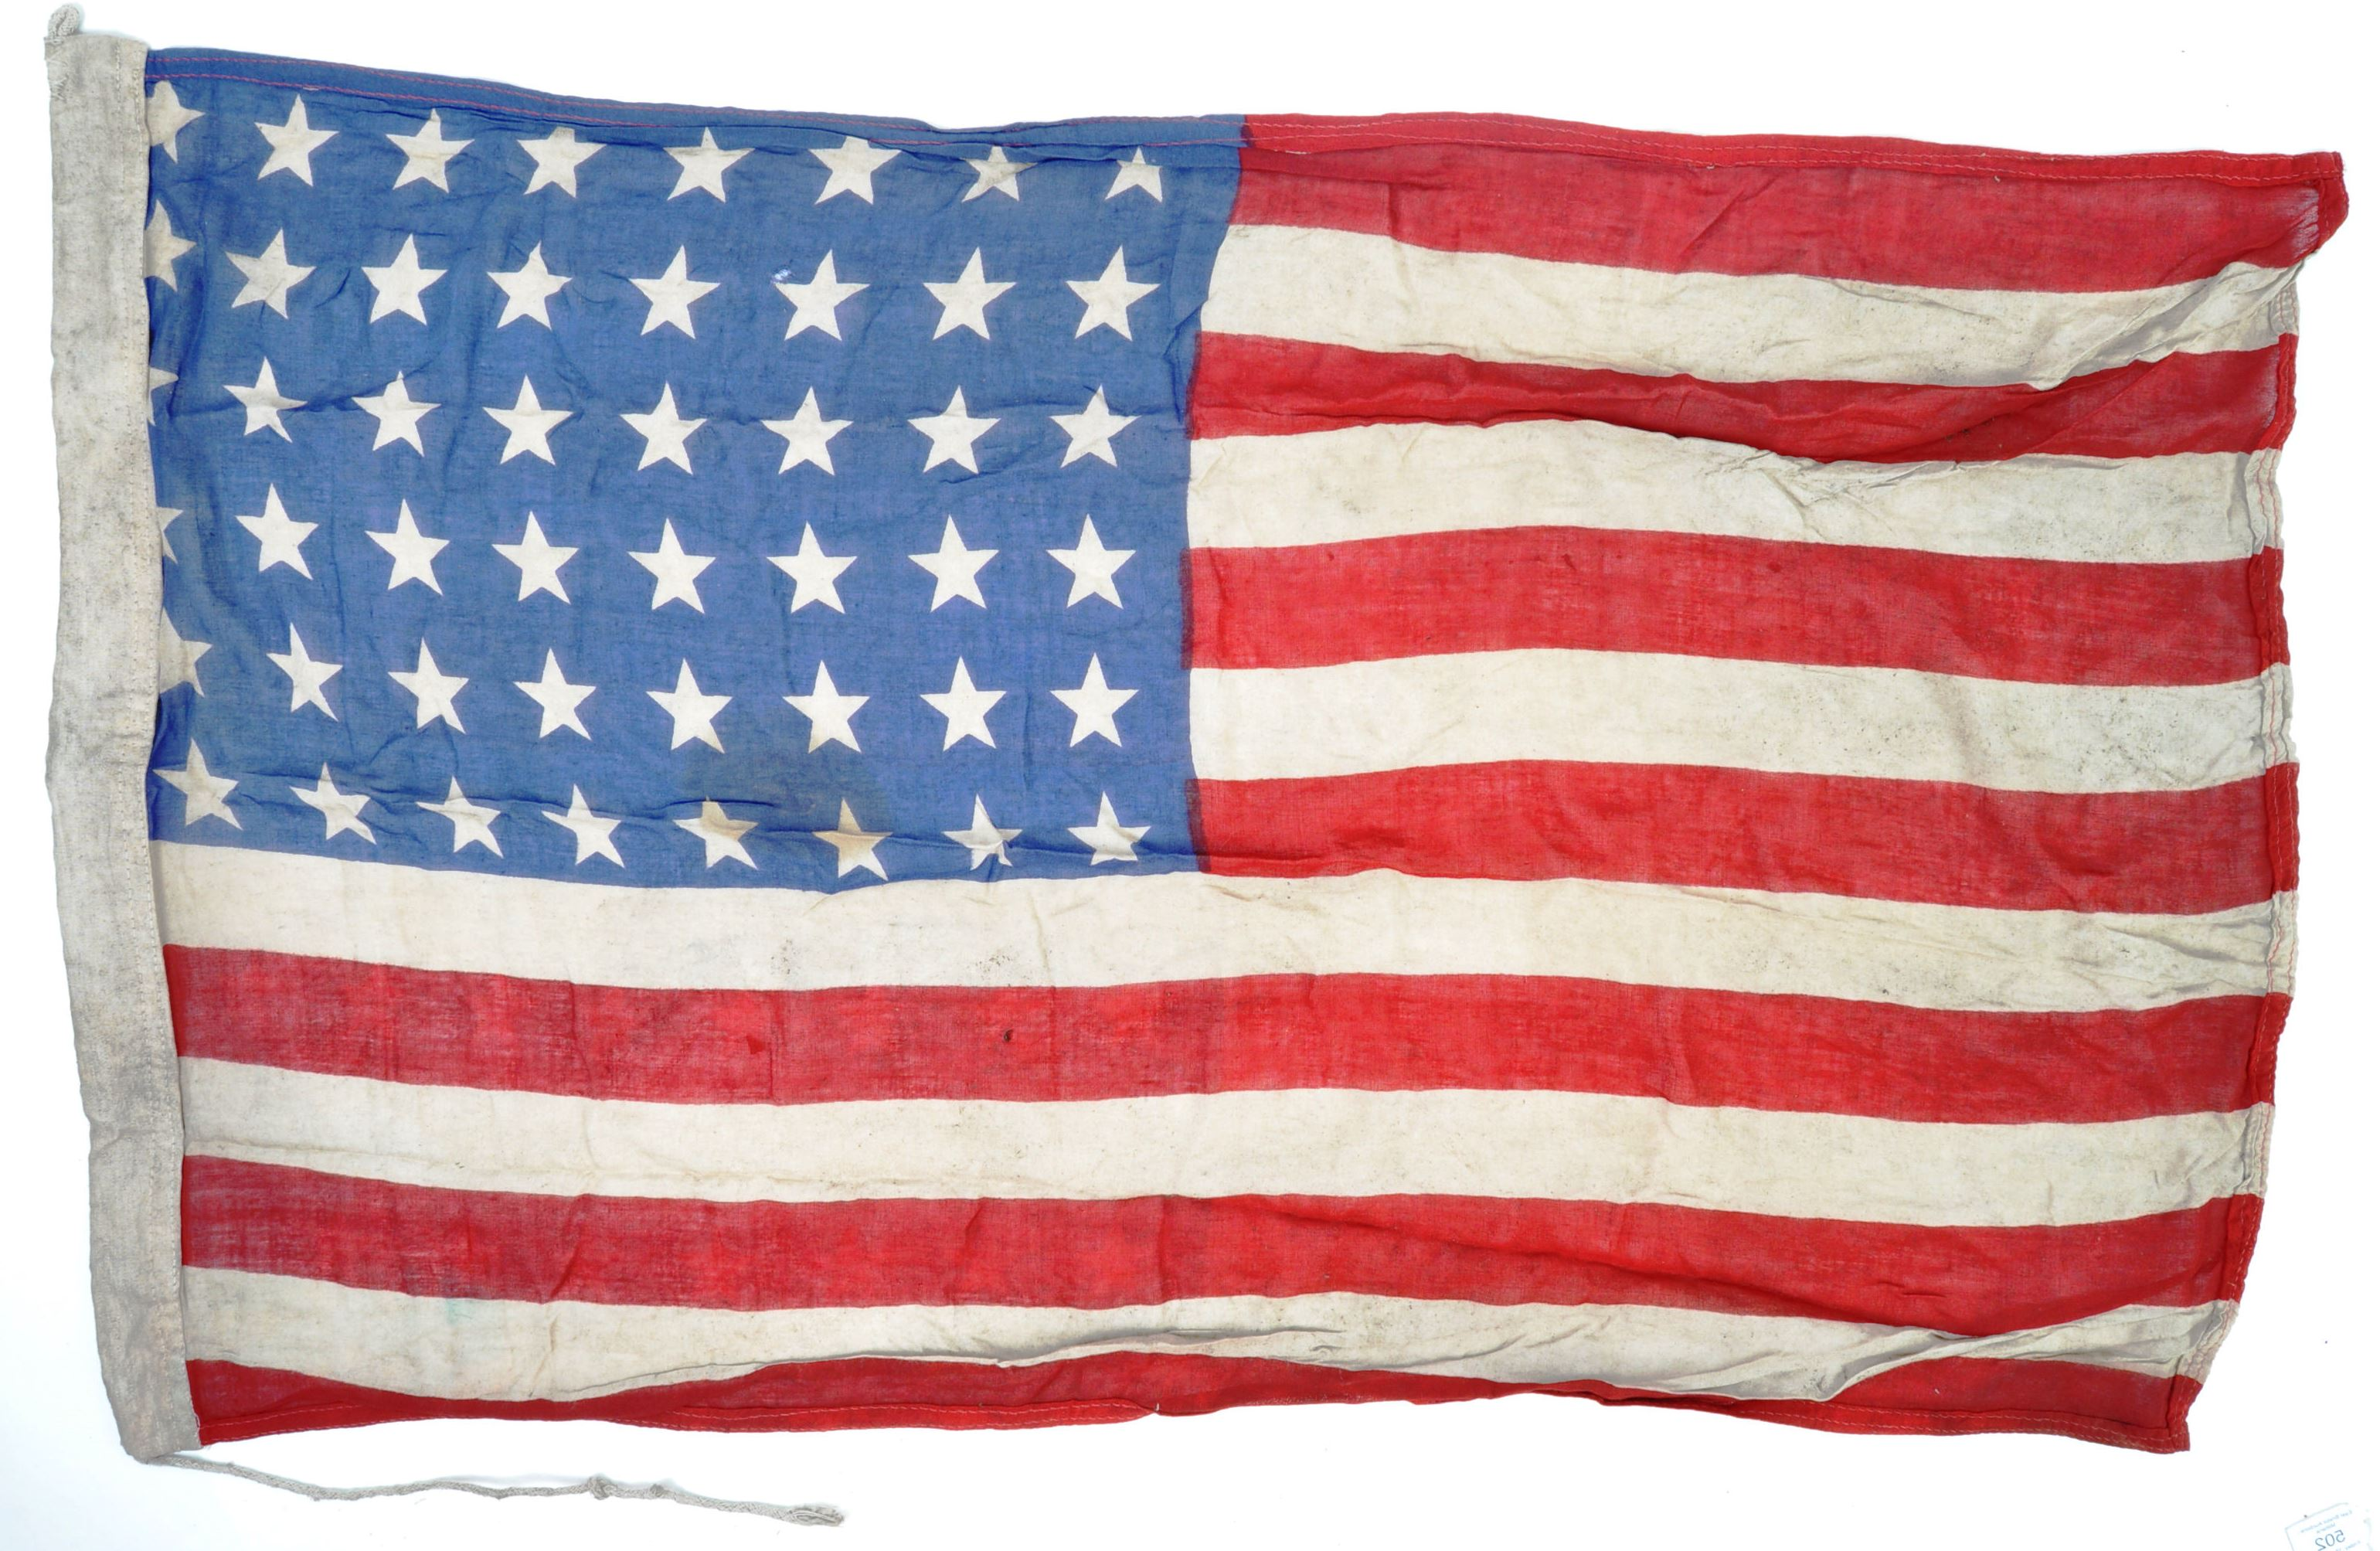 WWII SECOND WORLD WAR INTEREST FLAG - 1942 US ARMY DATED - Image 7 of 7